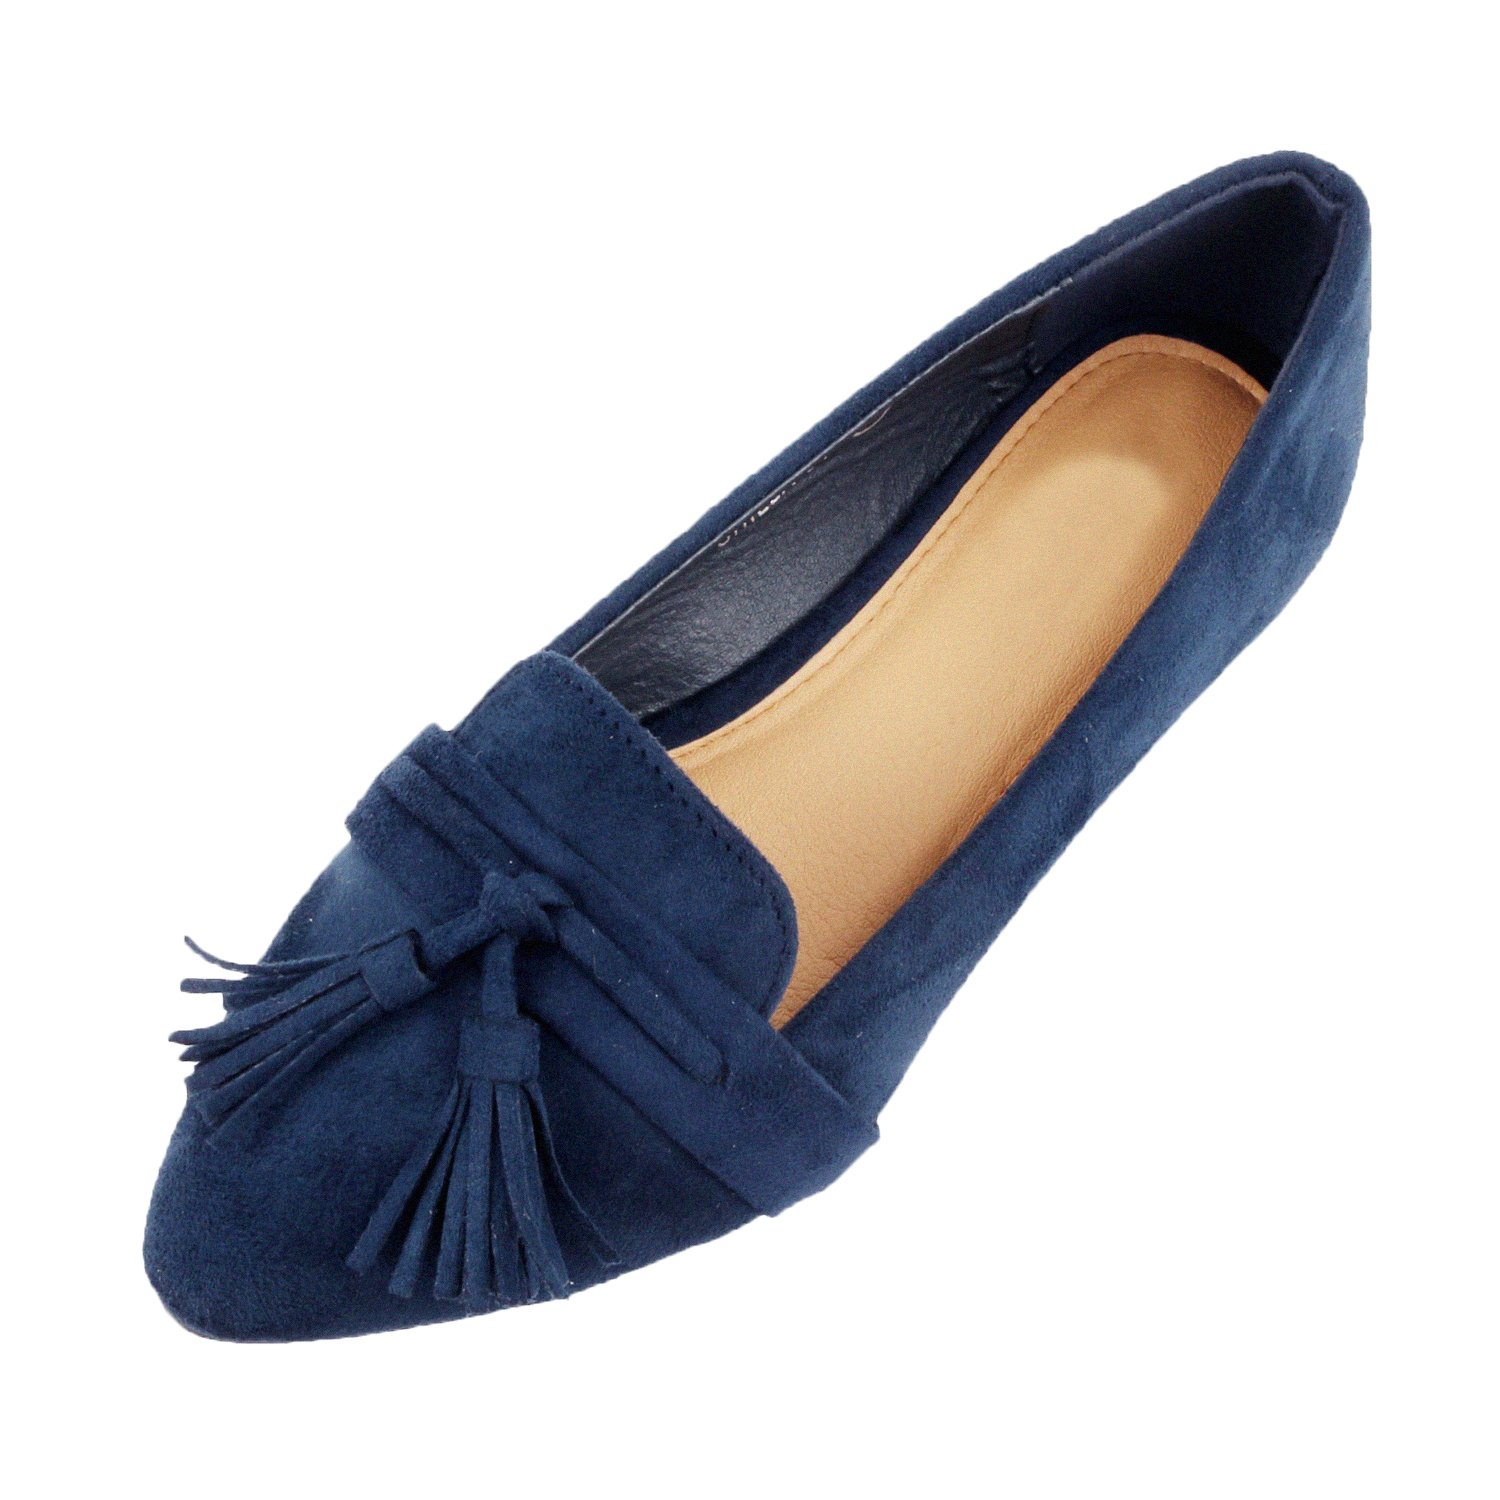 Guilty Heart Womens Tassel Slip On Suede Comfort Pointy Toe Loafer Oxford Espadrille Casual Flats (9 B(M) US, Navy Suede)